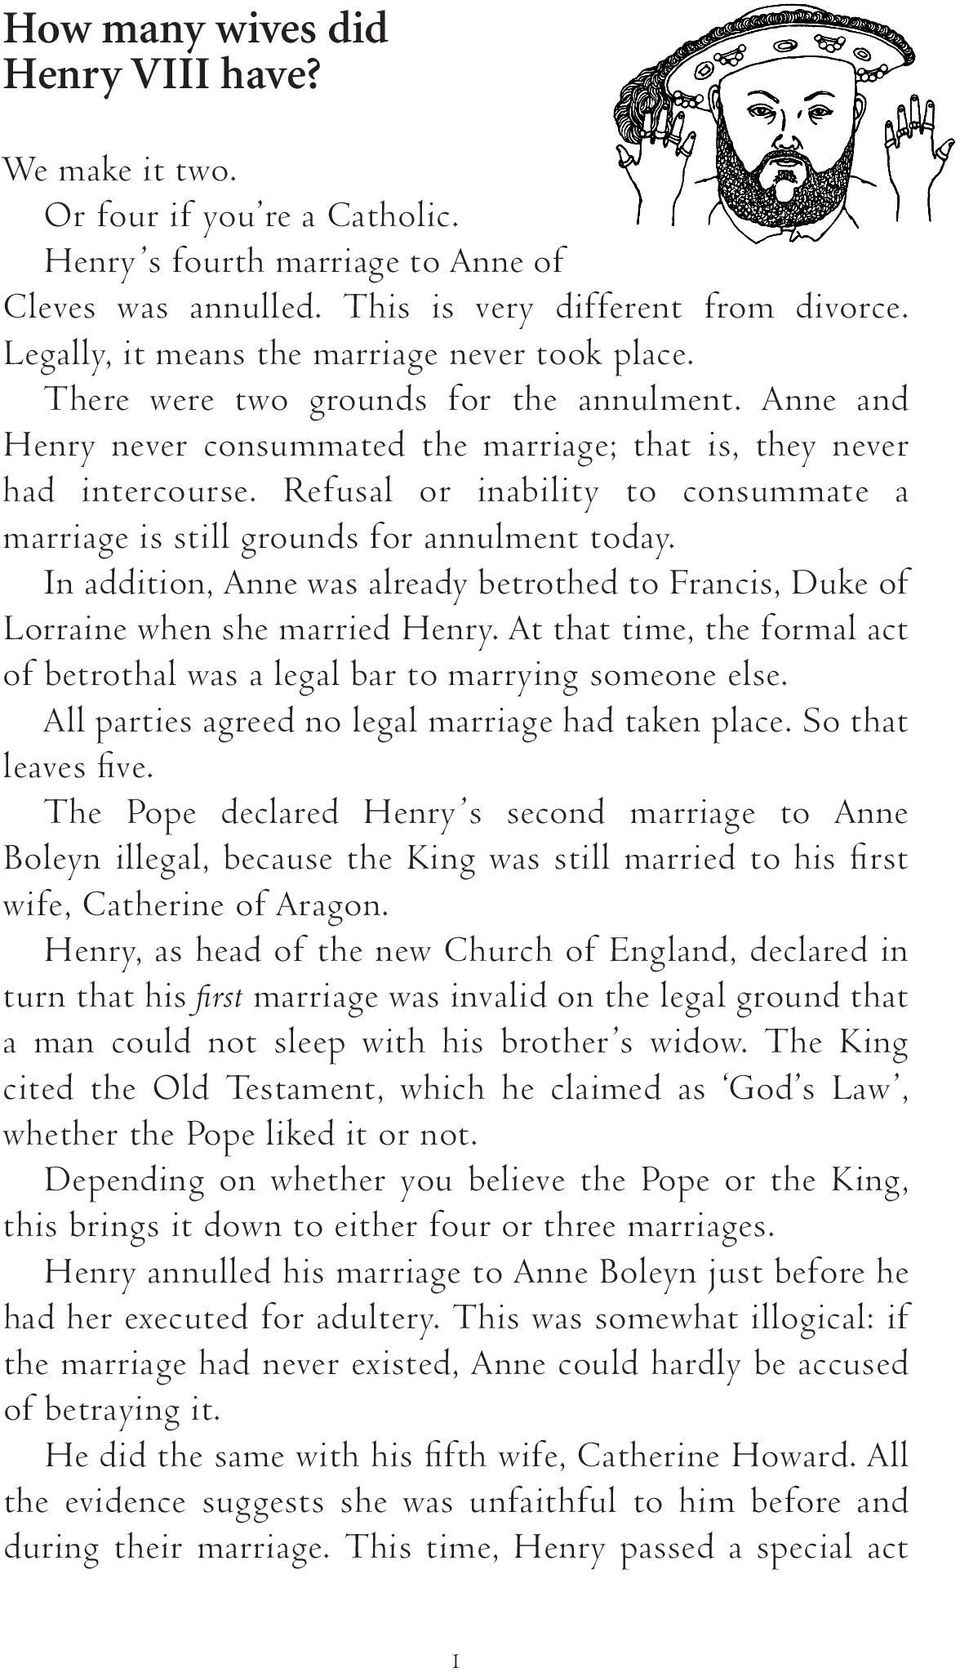 Refusal or inability to consummate a marriage is still grounds for annulment today. In addition, Anne was already betrothed to Francis, Duke of Lorraine when she married Henry.